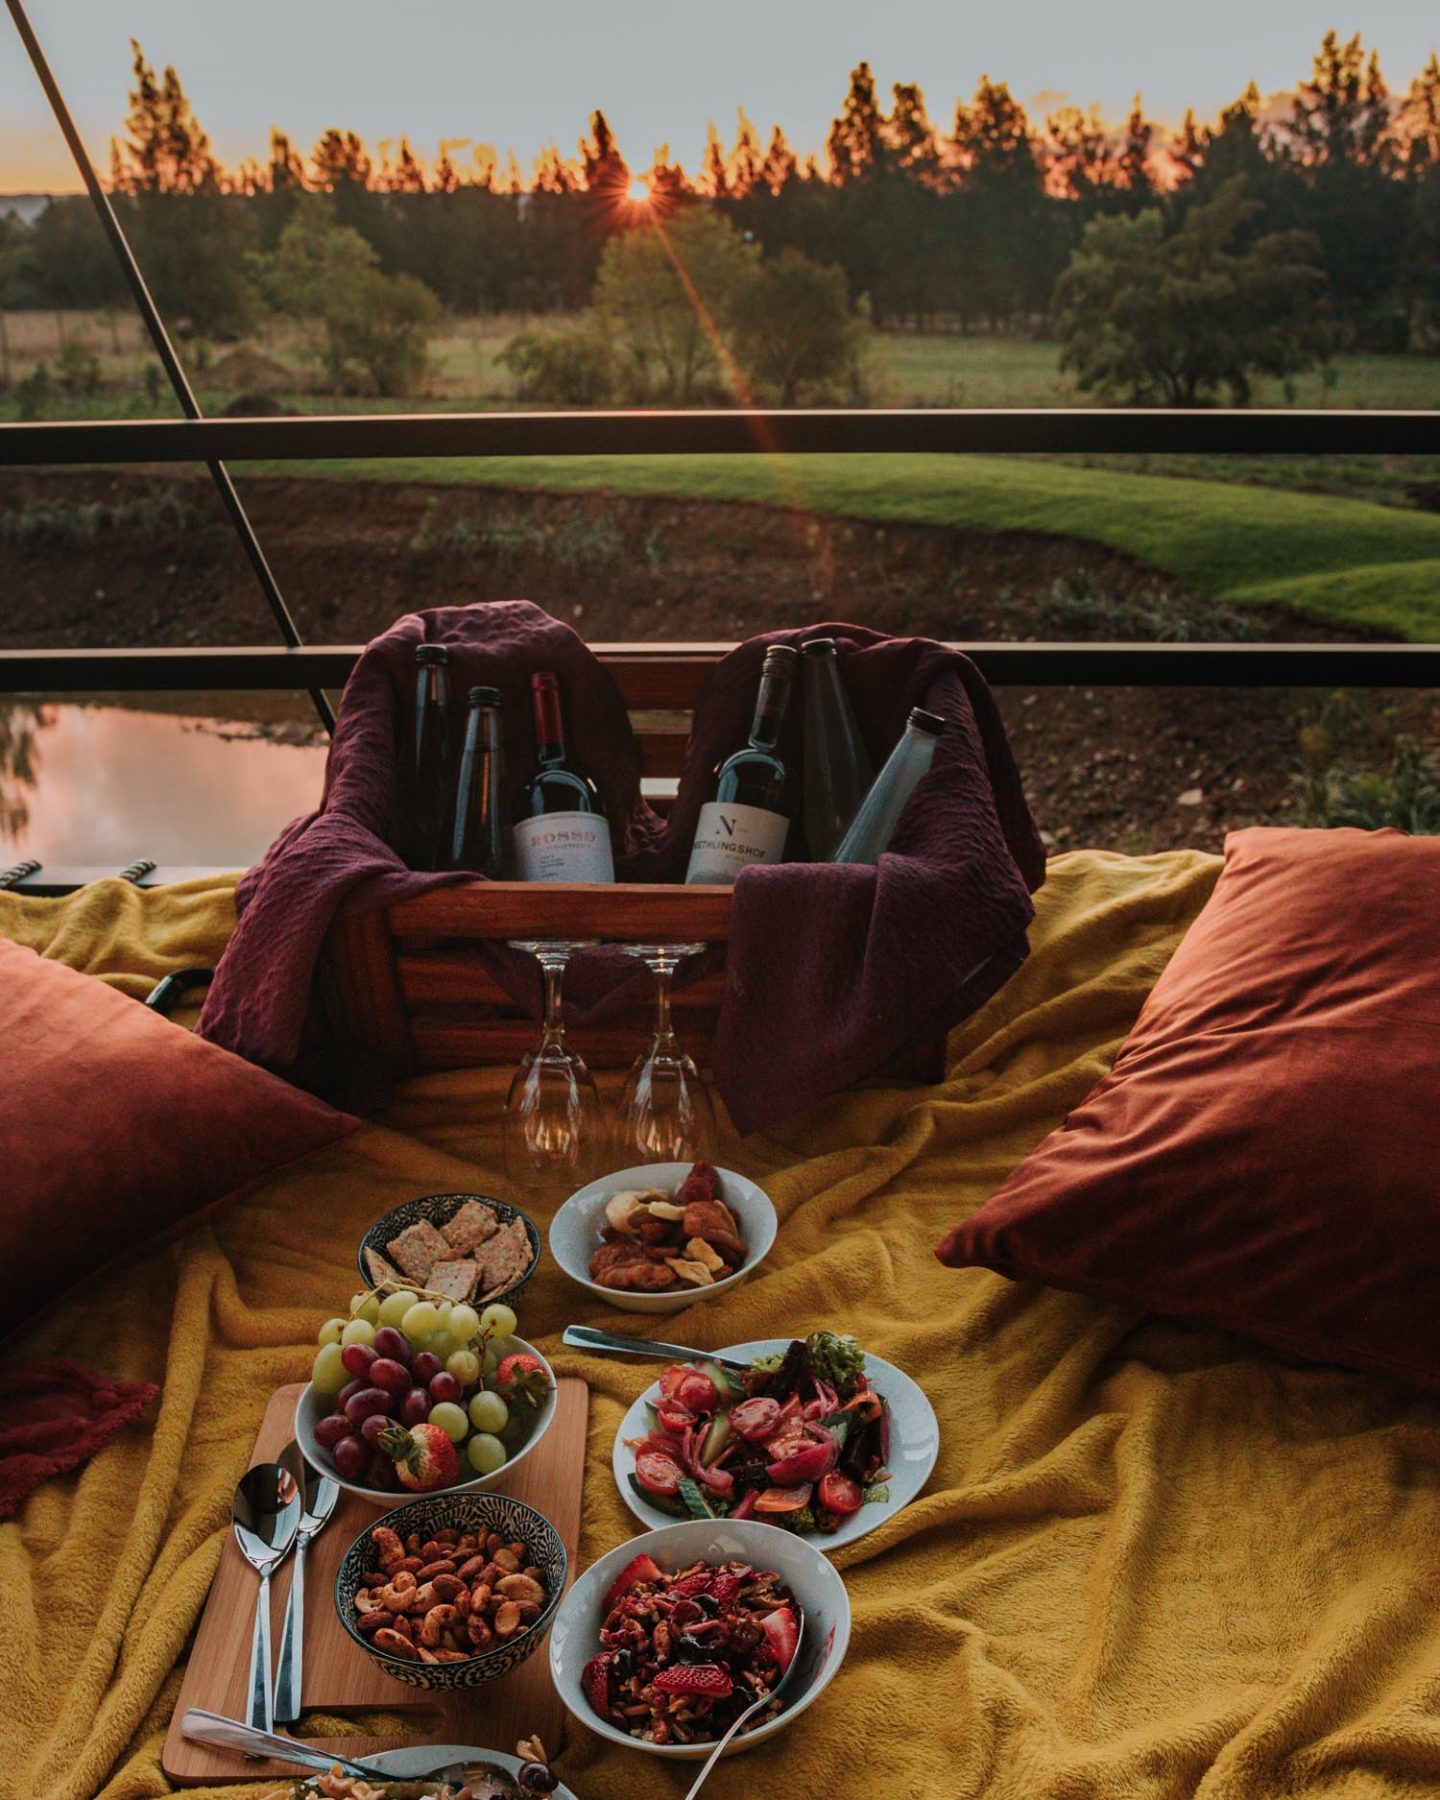 sunset picnic at rosemary hill farm